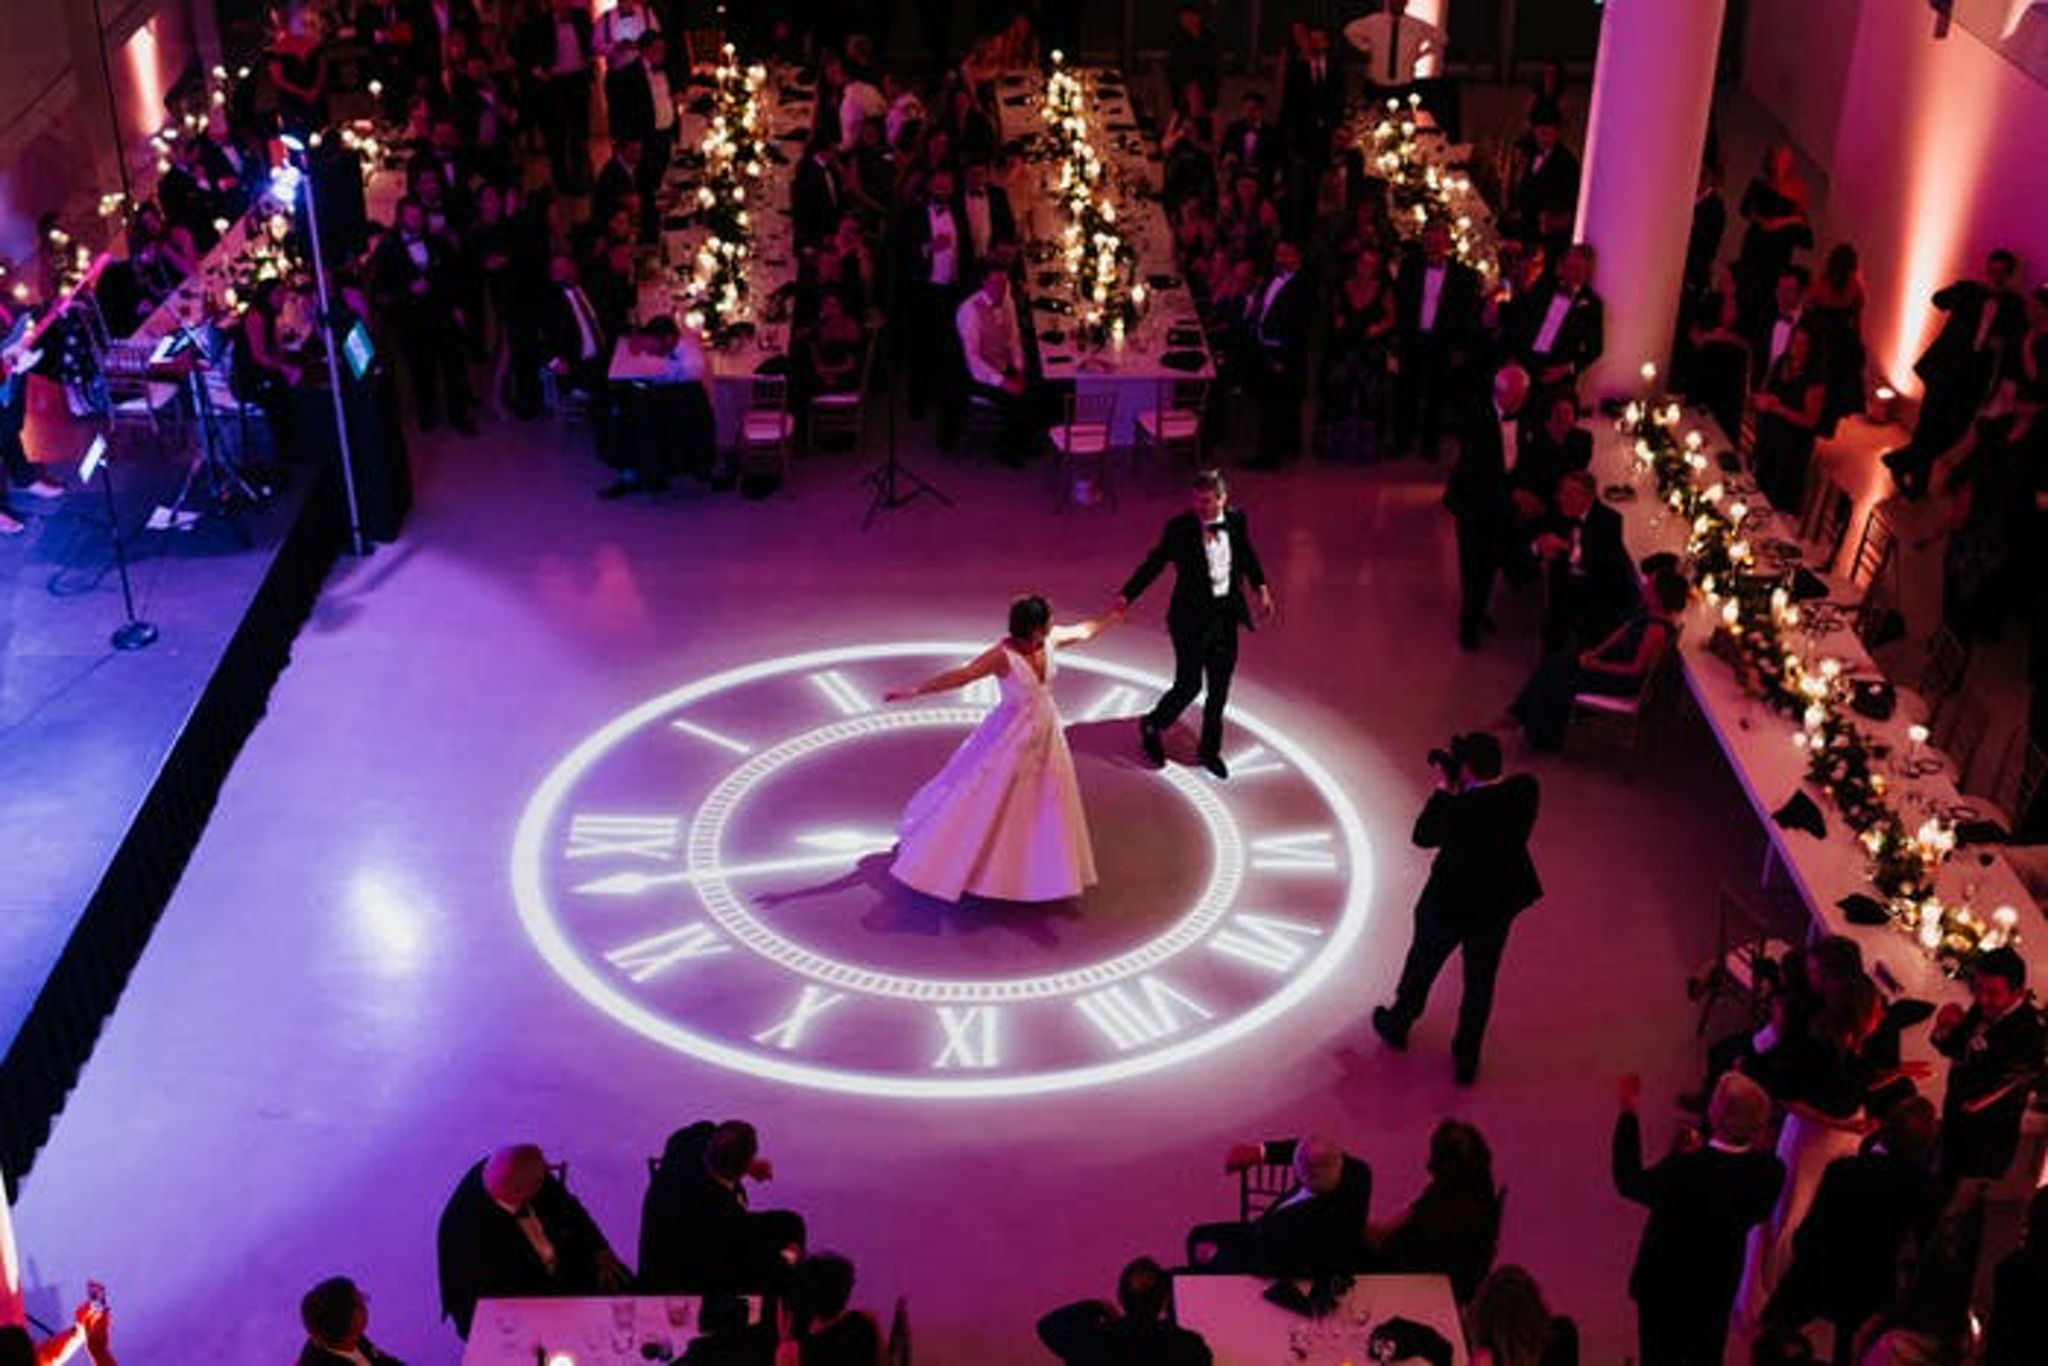 couple dances on a projected clock on the dance floor